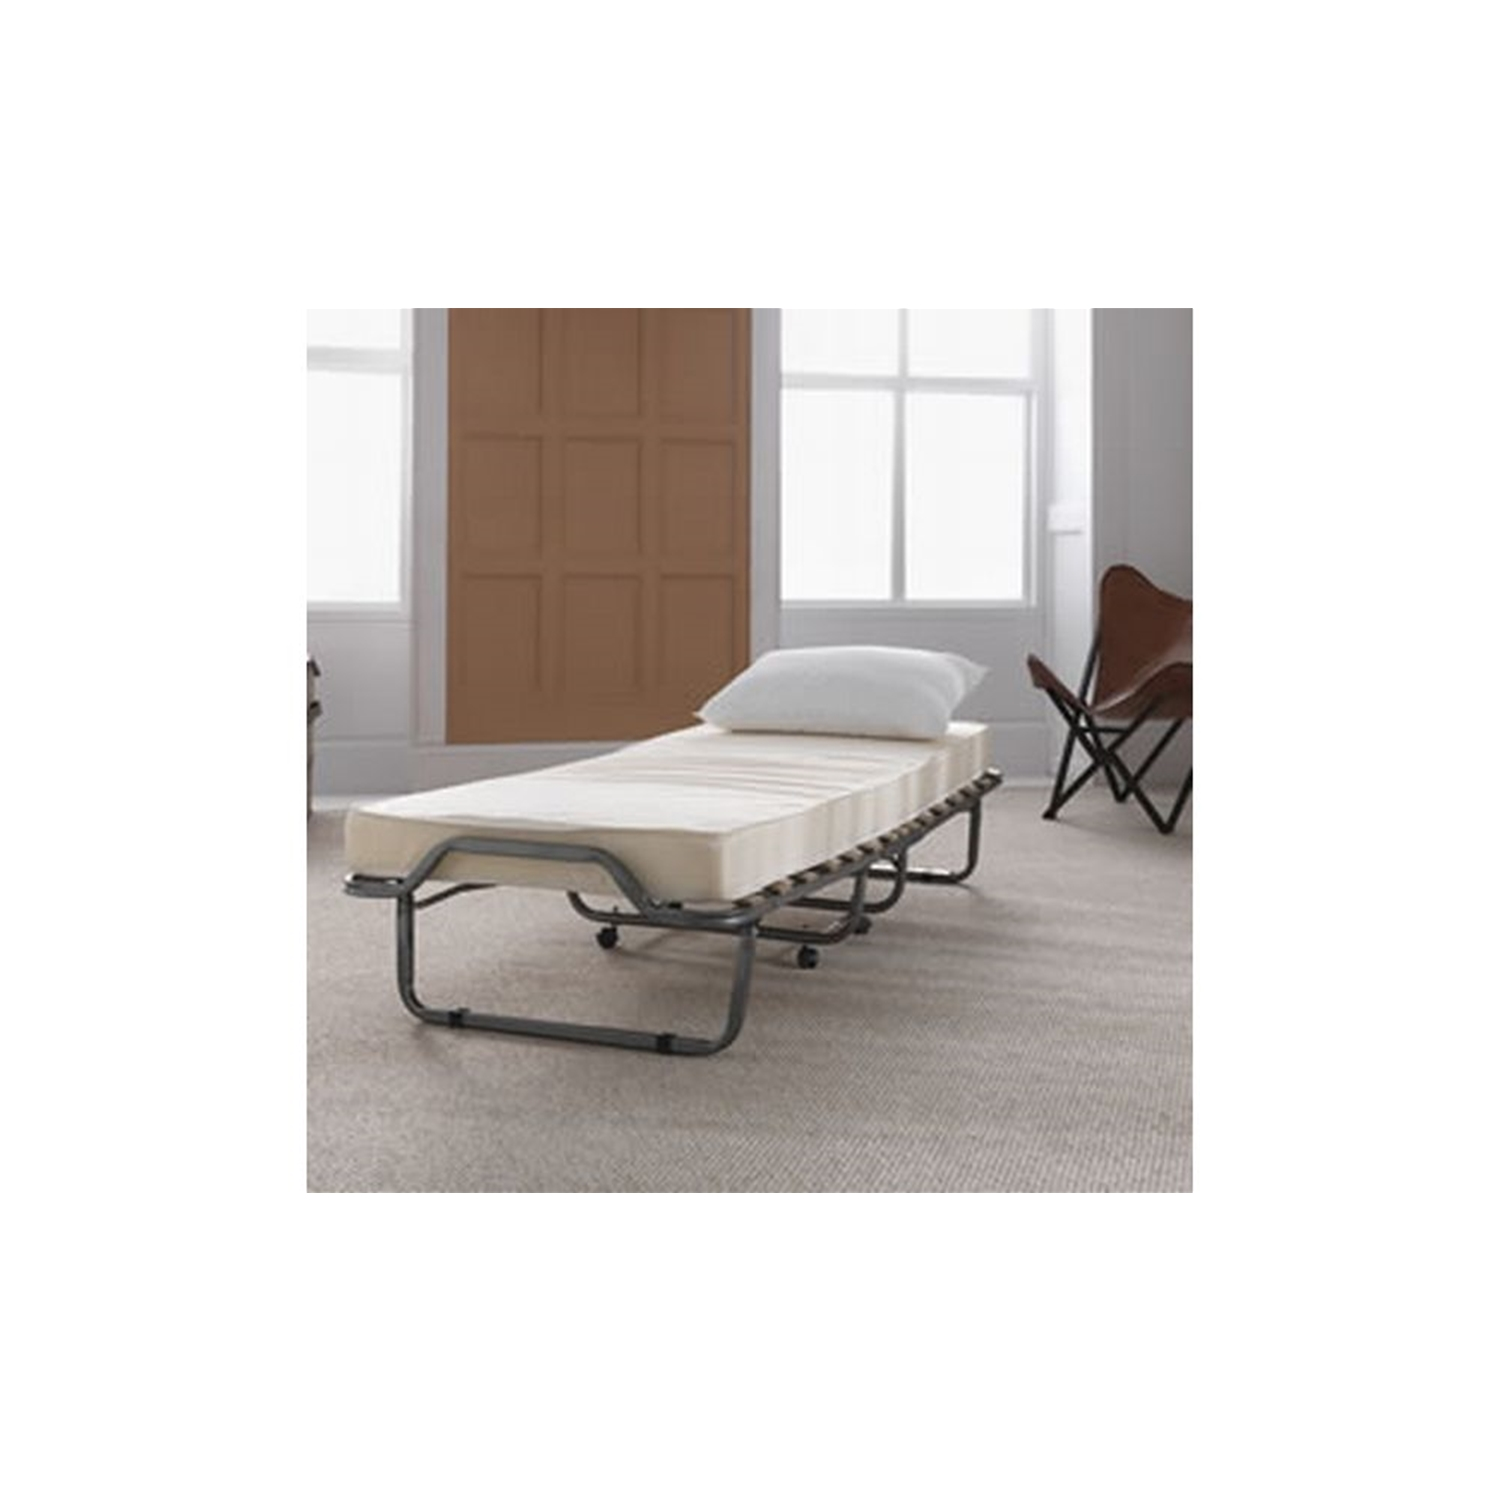 Image of Casa Luxor 85cm Folding Guest Bed